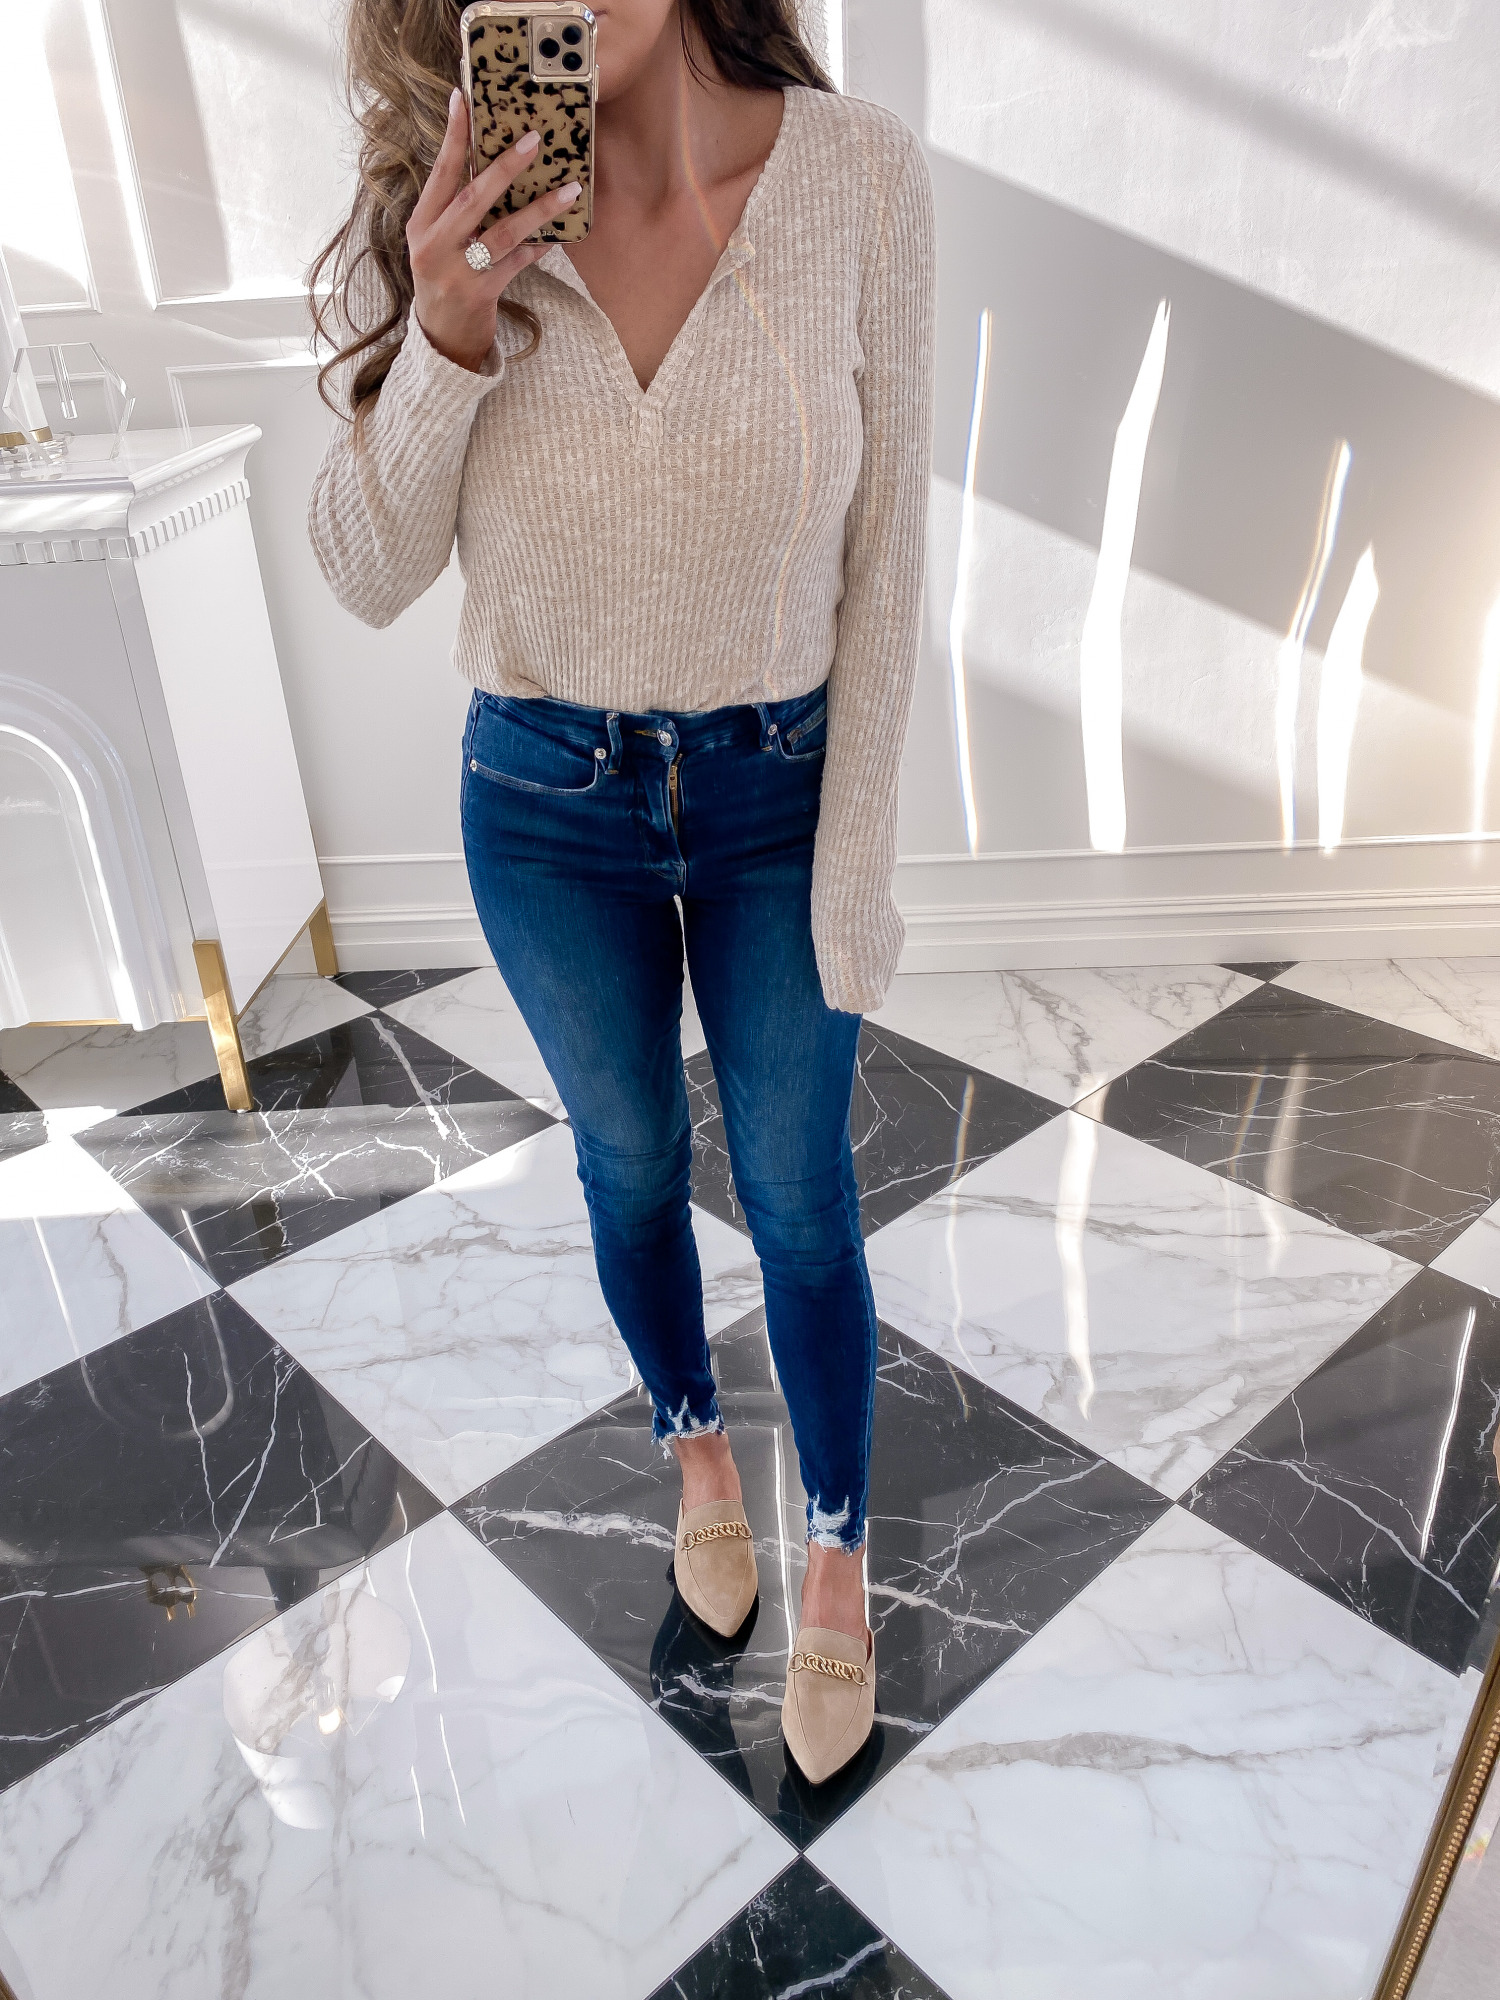 nsale 2020 womens shoes, Nsale 2020 fall outfit must haves | Nordstrom Anniversary Sale by popular US fashion blog, The Sweetest Thing: image of Emily Gemma wearing a pair of Forever Chain Pointed Toe Mule STEVE MADDEN, Good American Good Legs High Waist Raw Hem Skinny Jeans, and Long Sleeve Thermal Henley Top SOCIALITE.